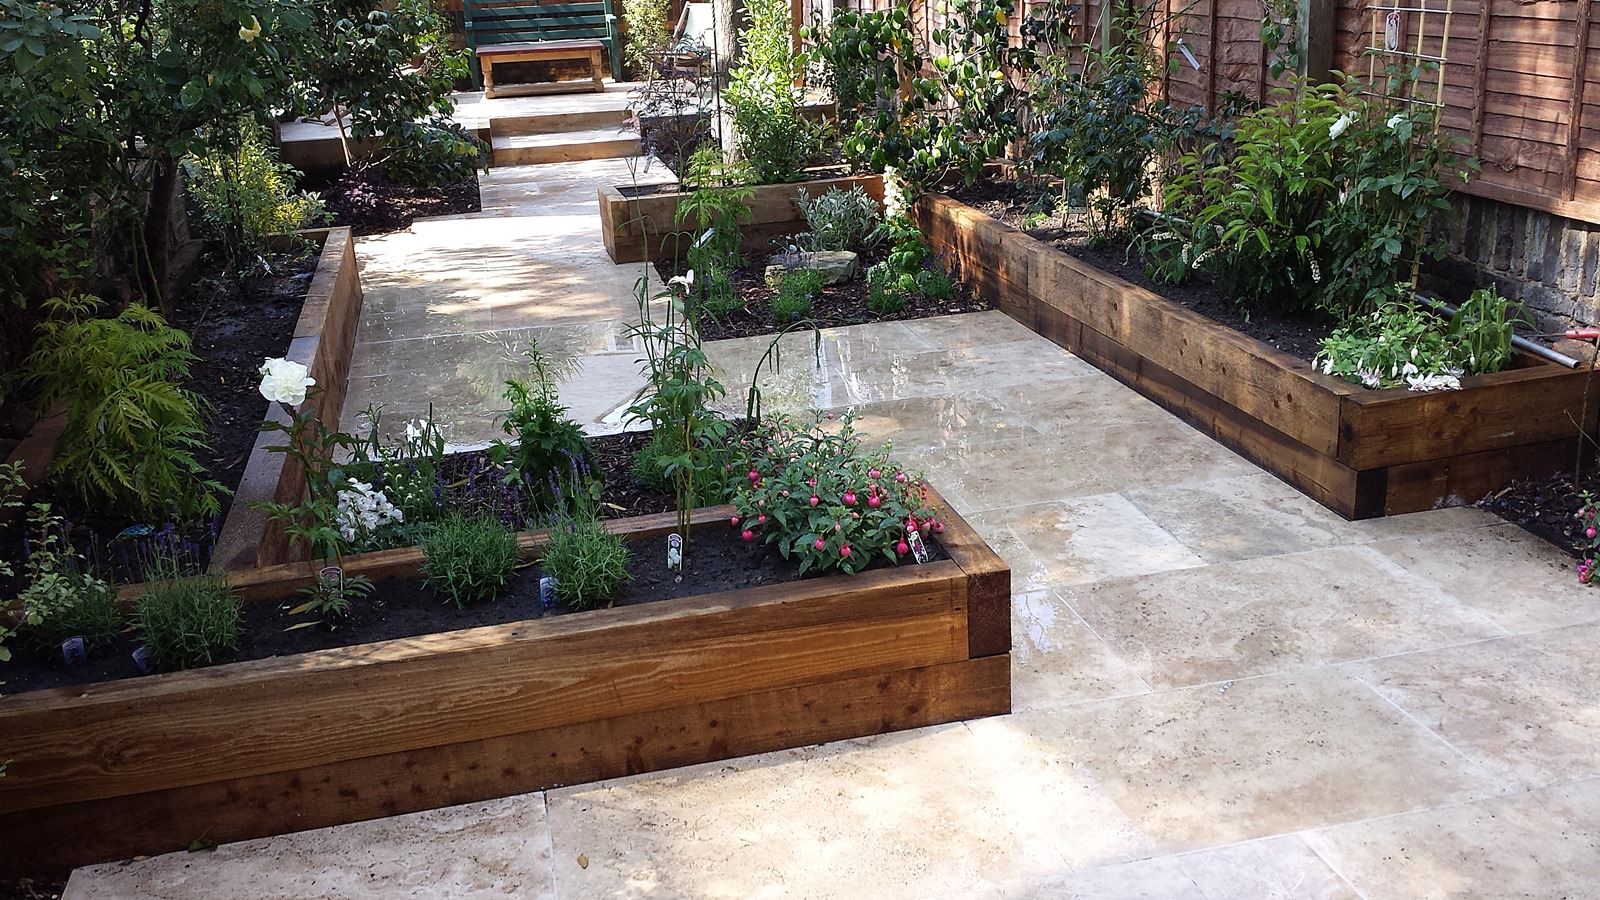 Travertine paving patio modern garden design landscaping for Garden patio design ideas